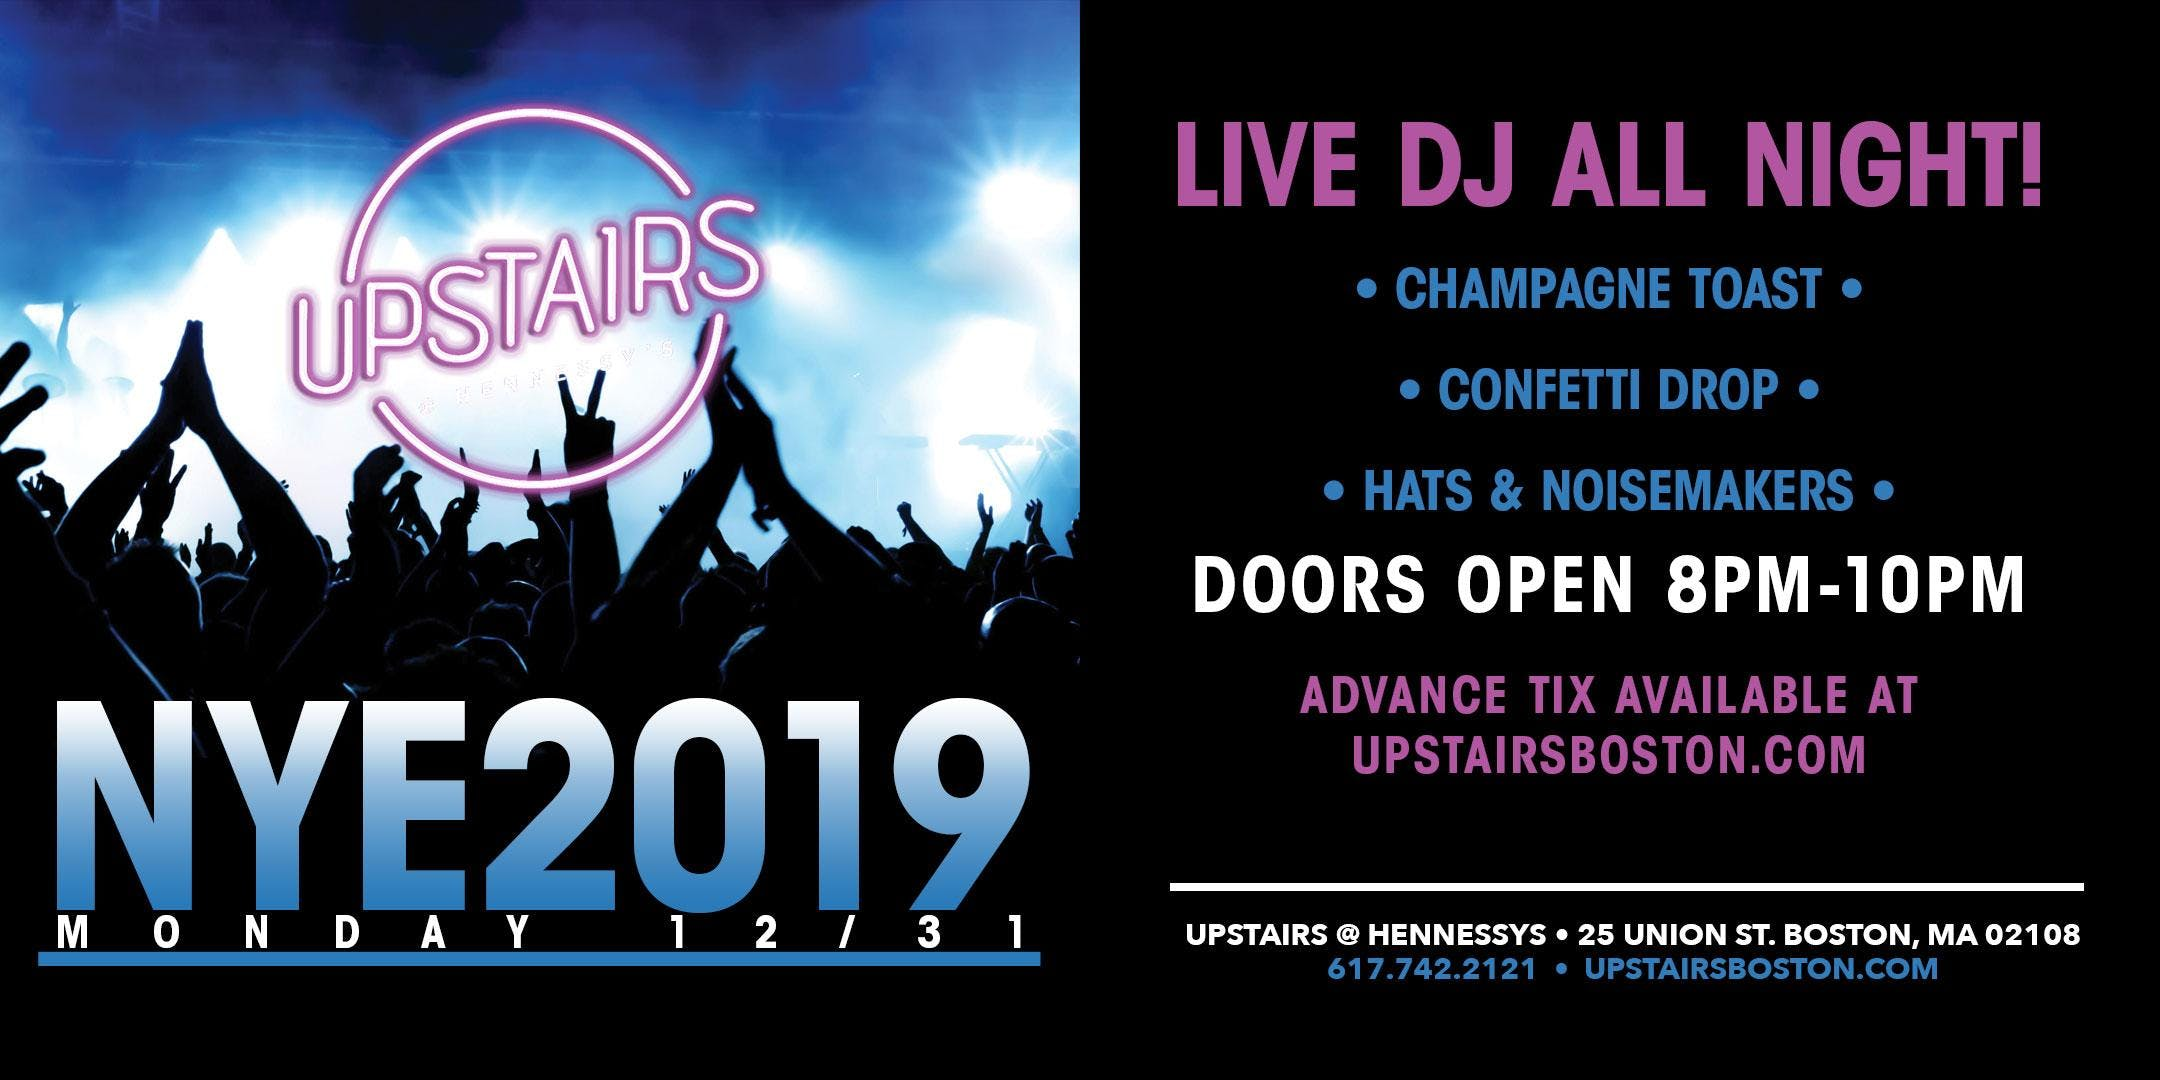 Upstairs @ Hennessy's NYE 2019